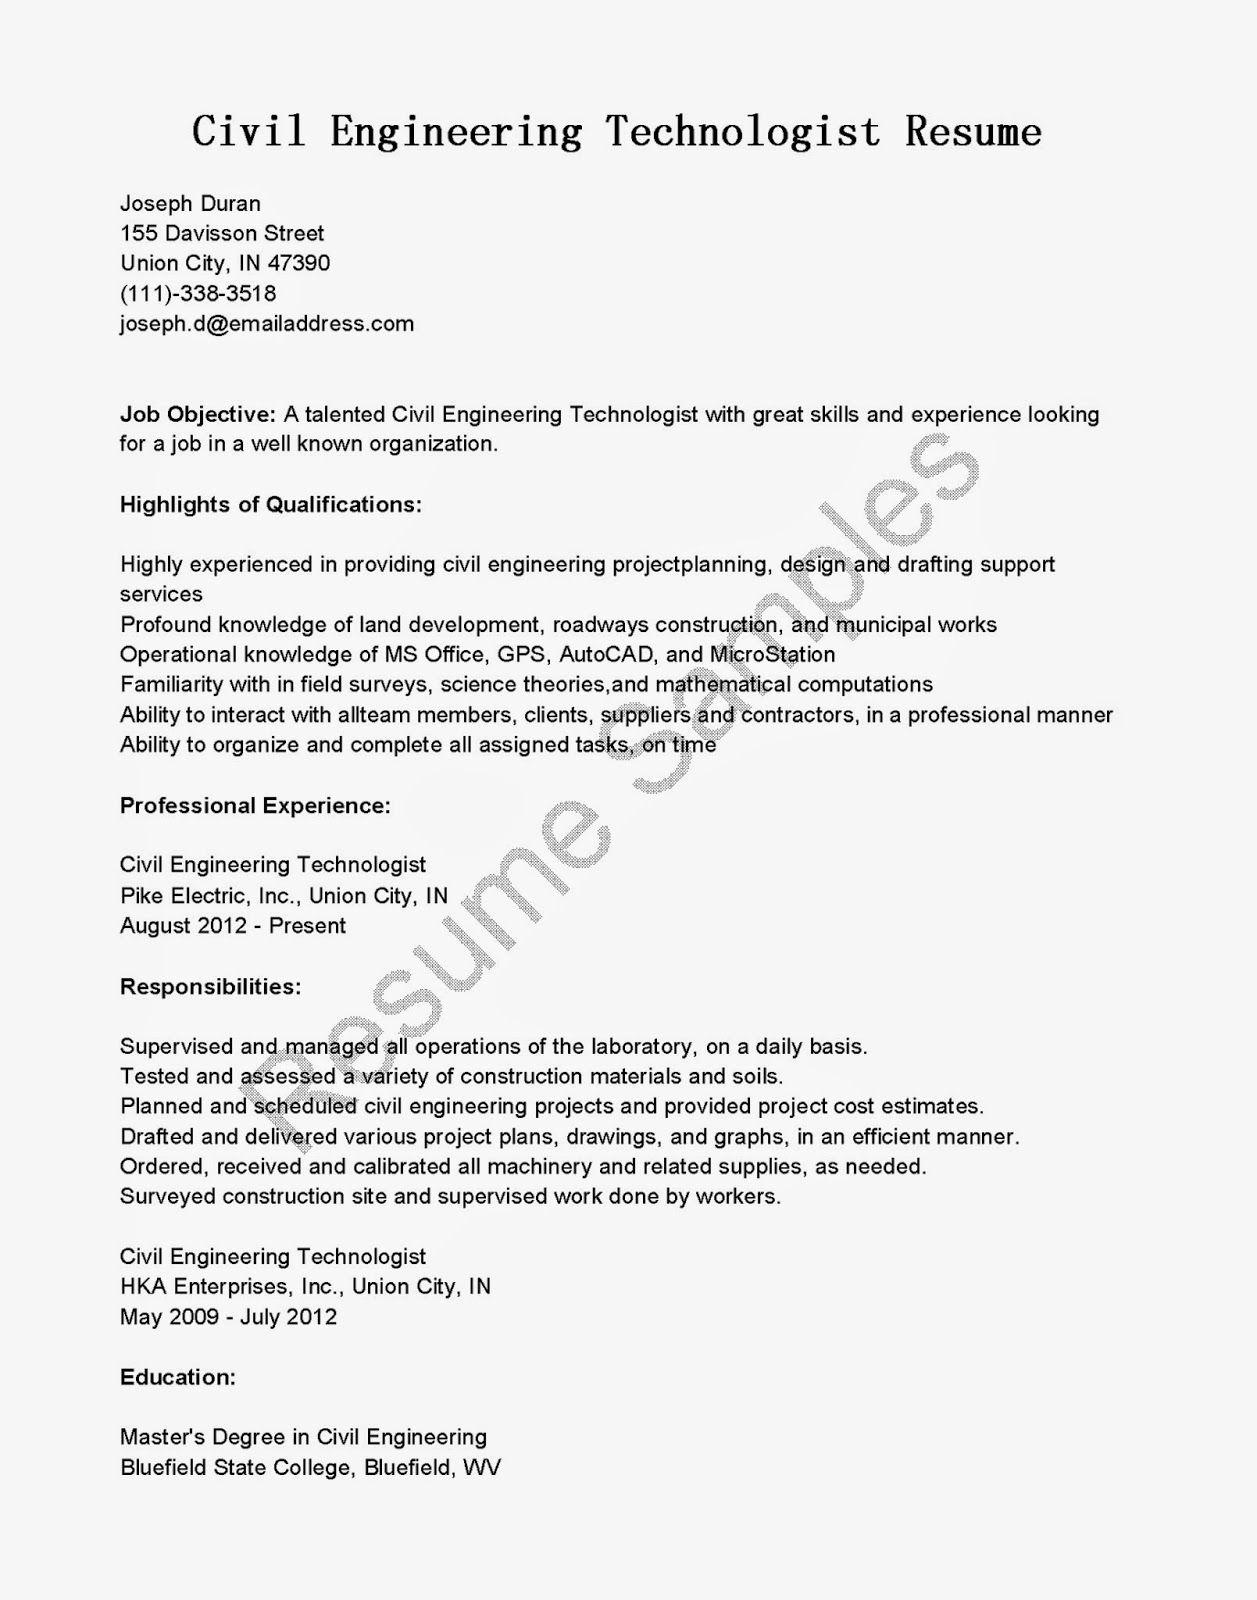 Resume Objective For Civil Engineering Student Resume Samples Civil Engineering Technologist Resume Sample